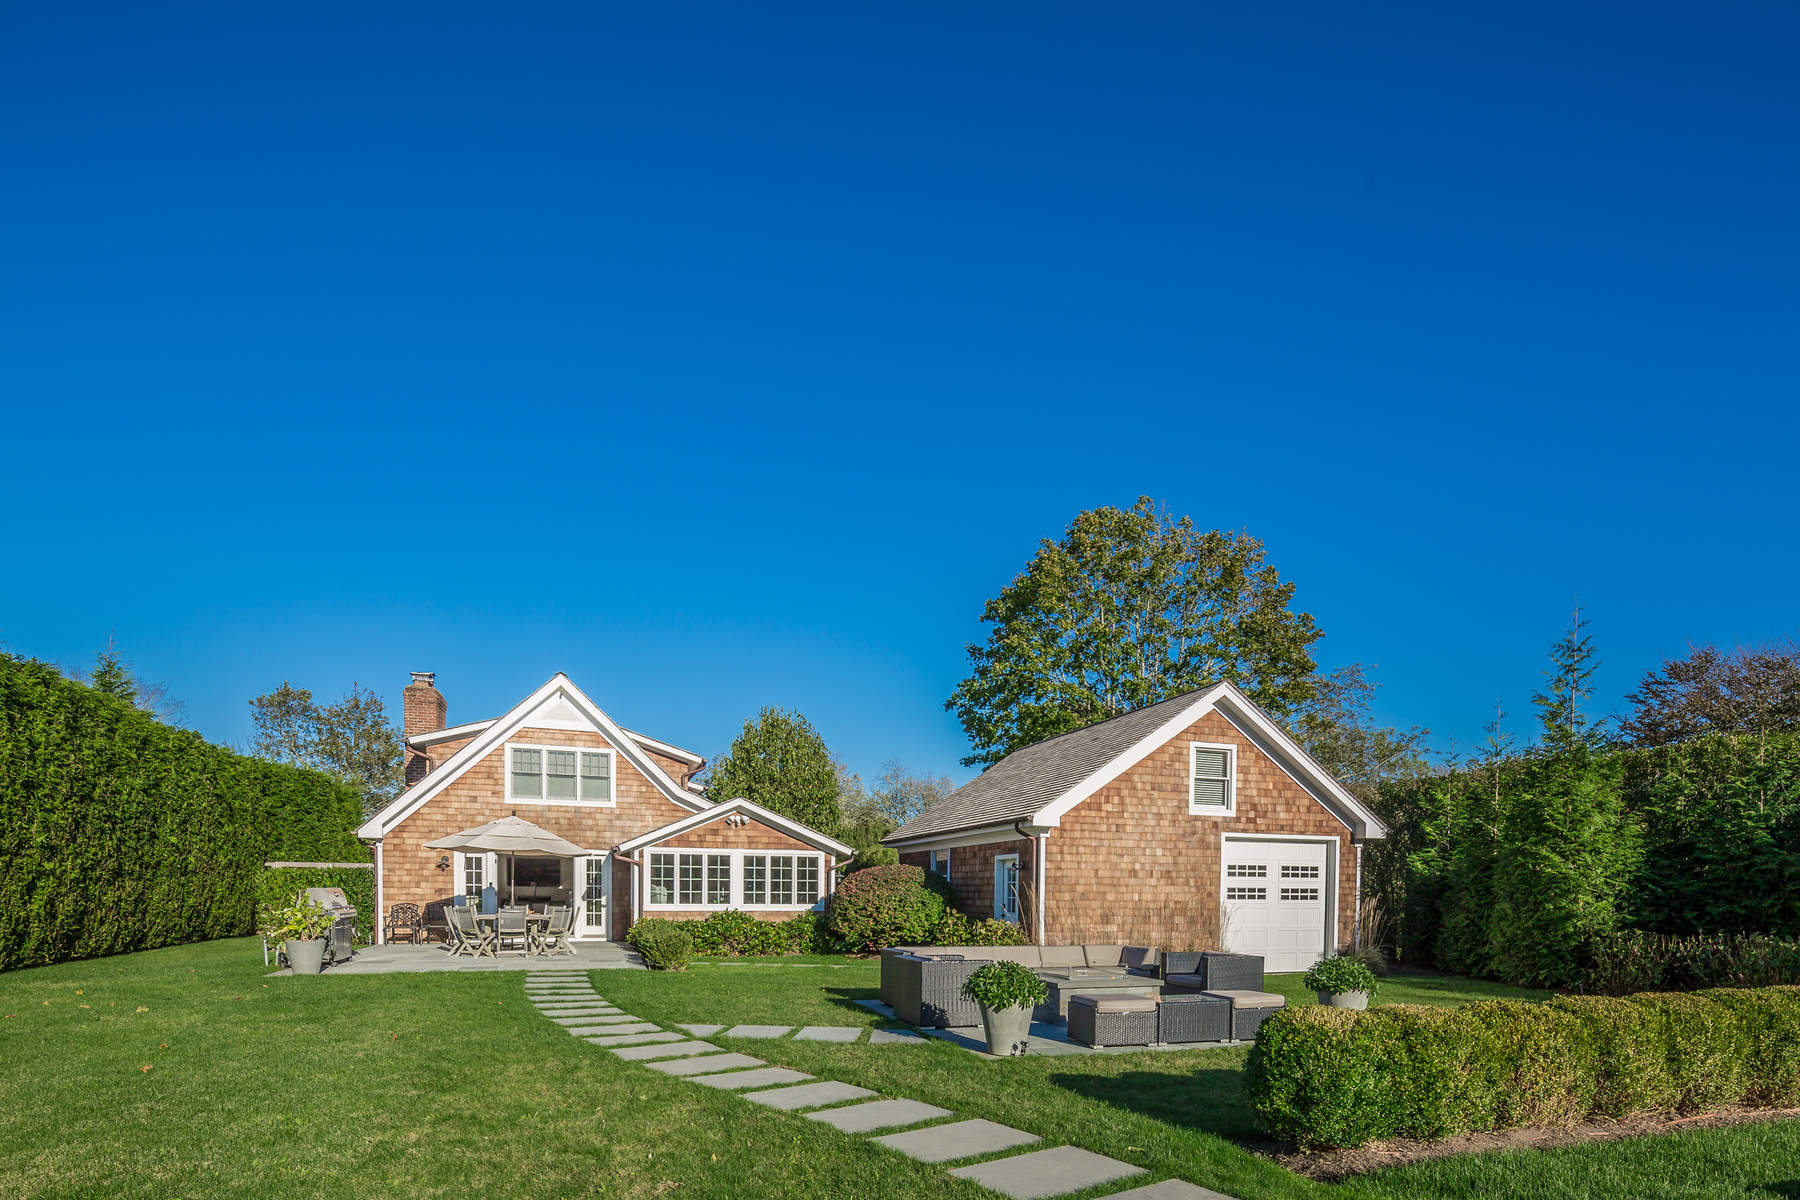 Single Family Home for Rent at Beach House Half Mile to the Ocean 16 Indian Wells Amagansett, New York 11930 United States